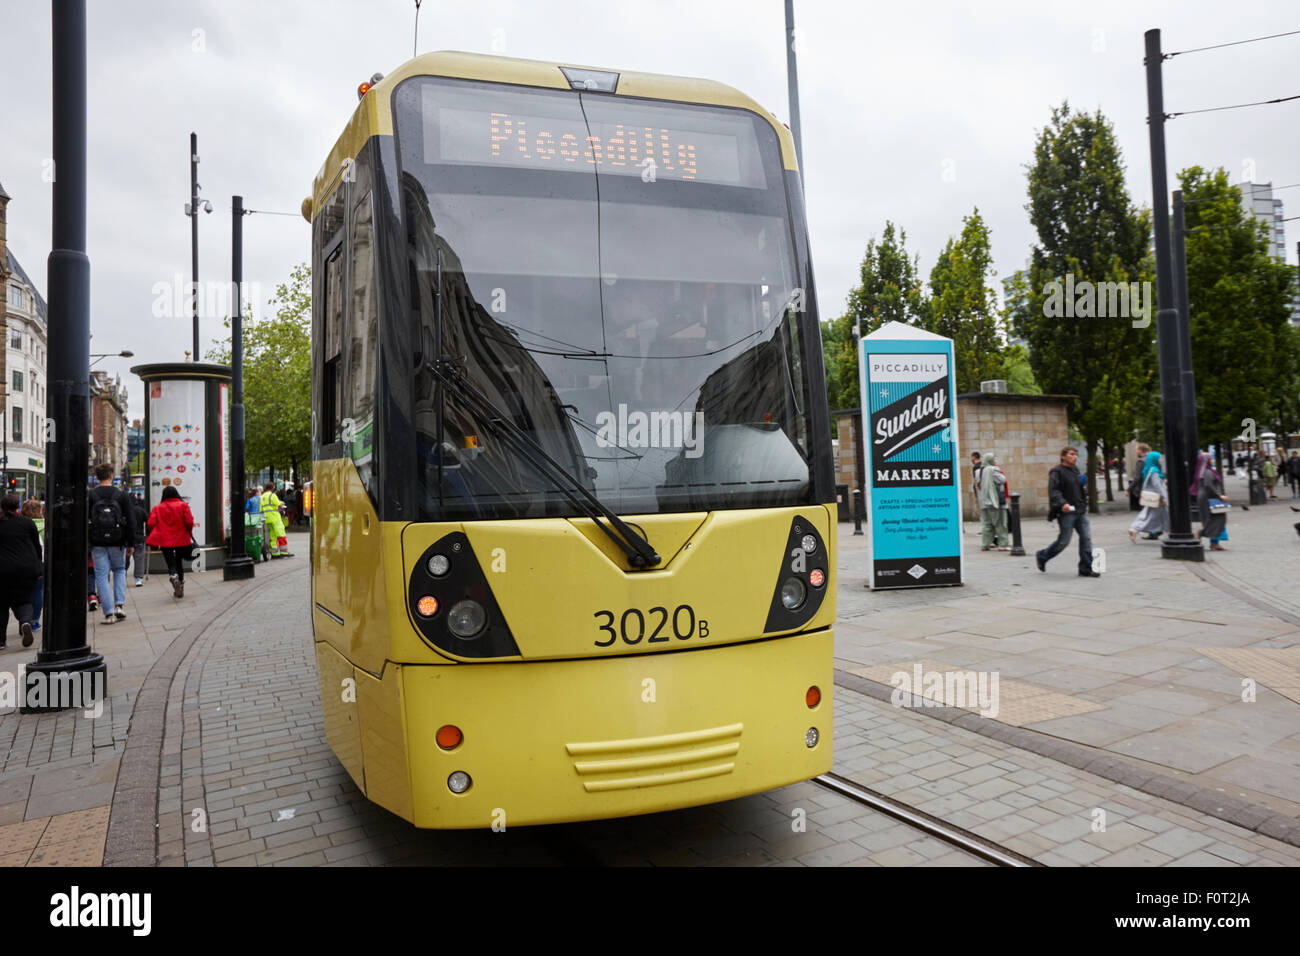 metrolink tram in manchester city centre Manchester England UK - Stock Image